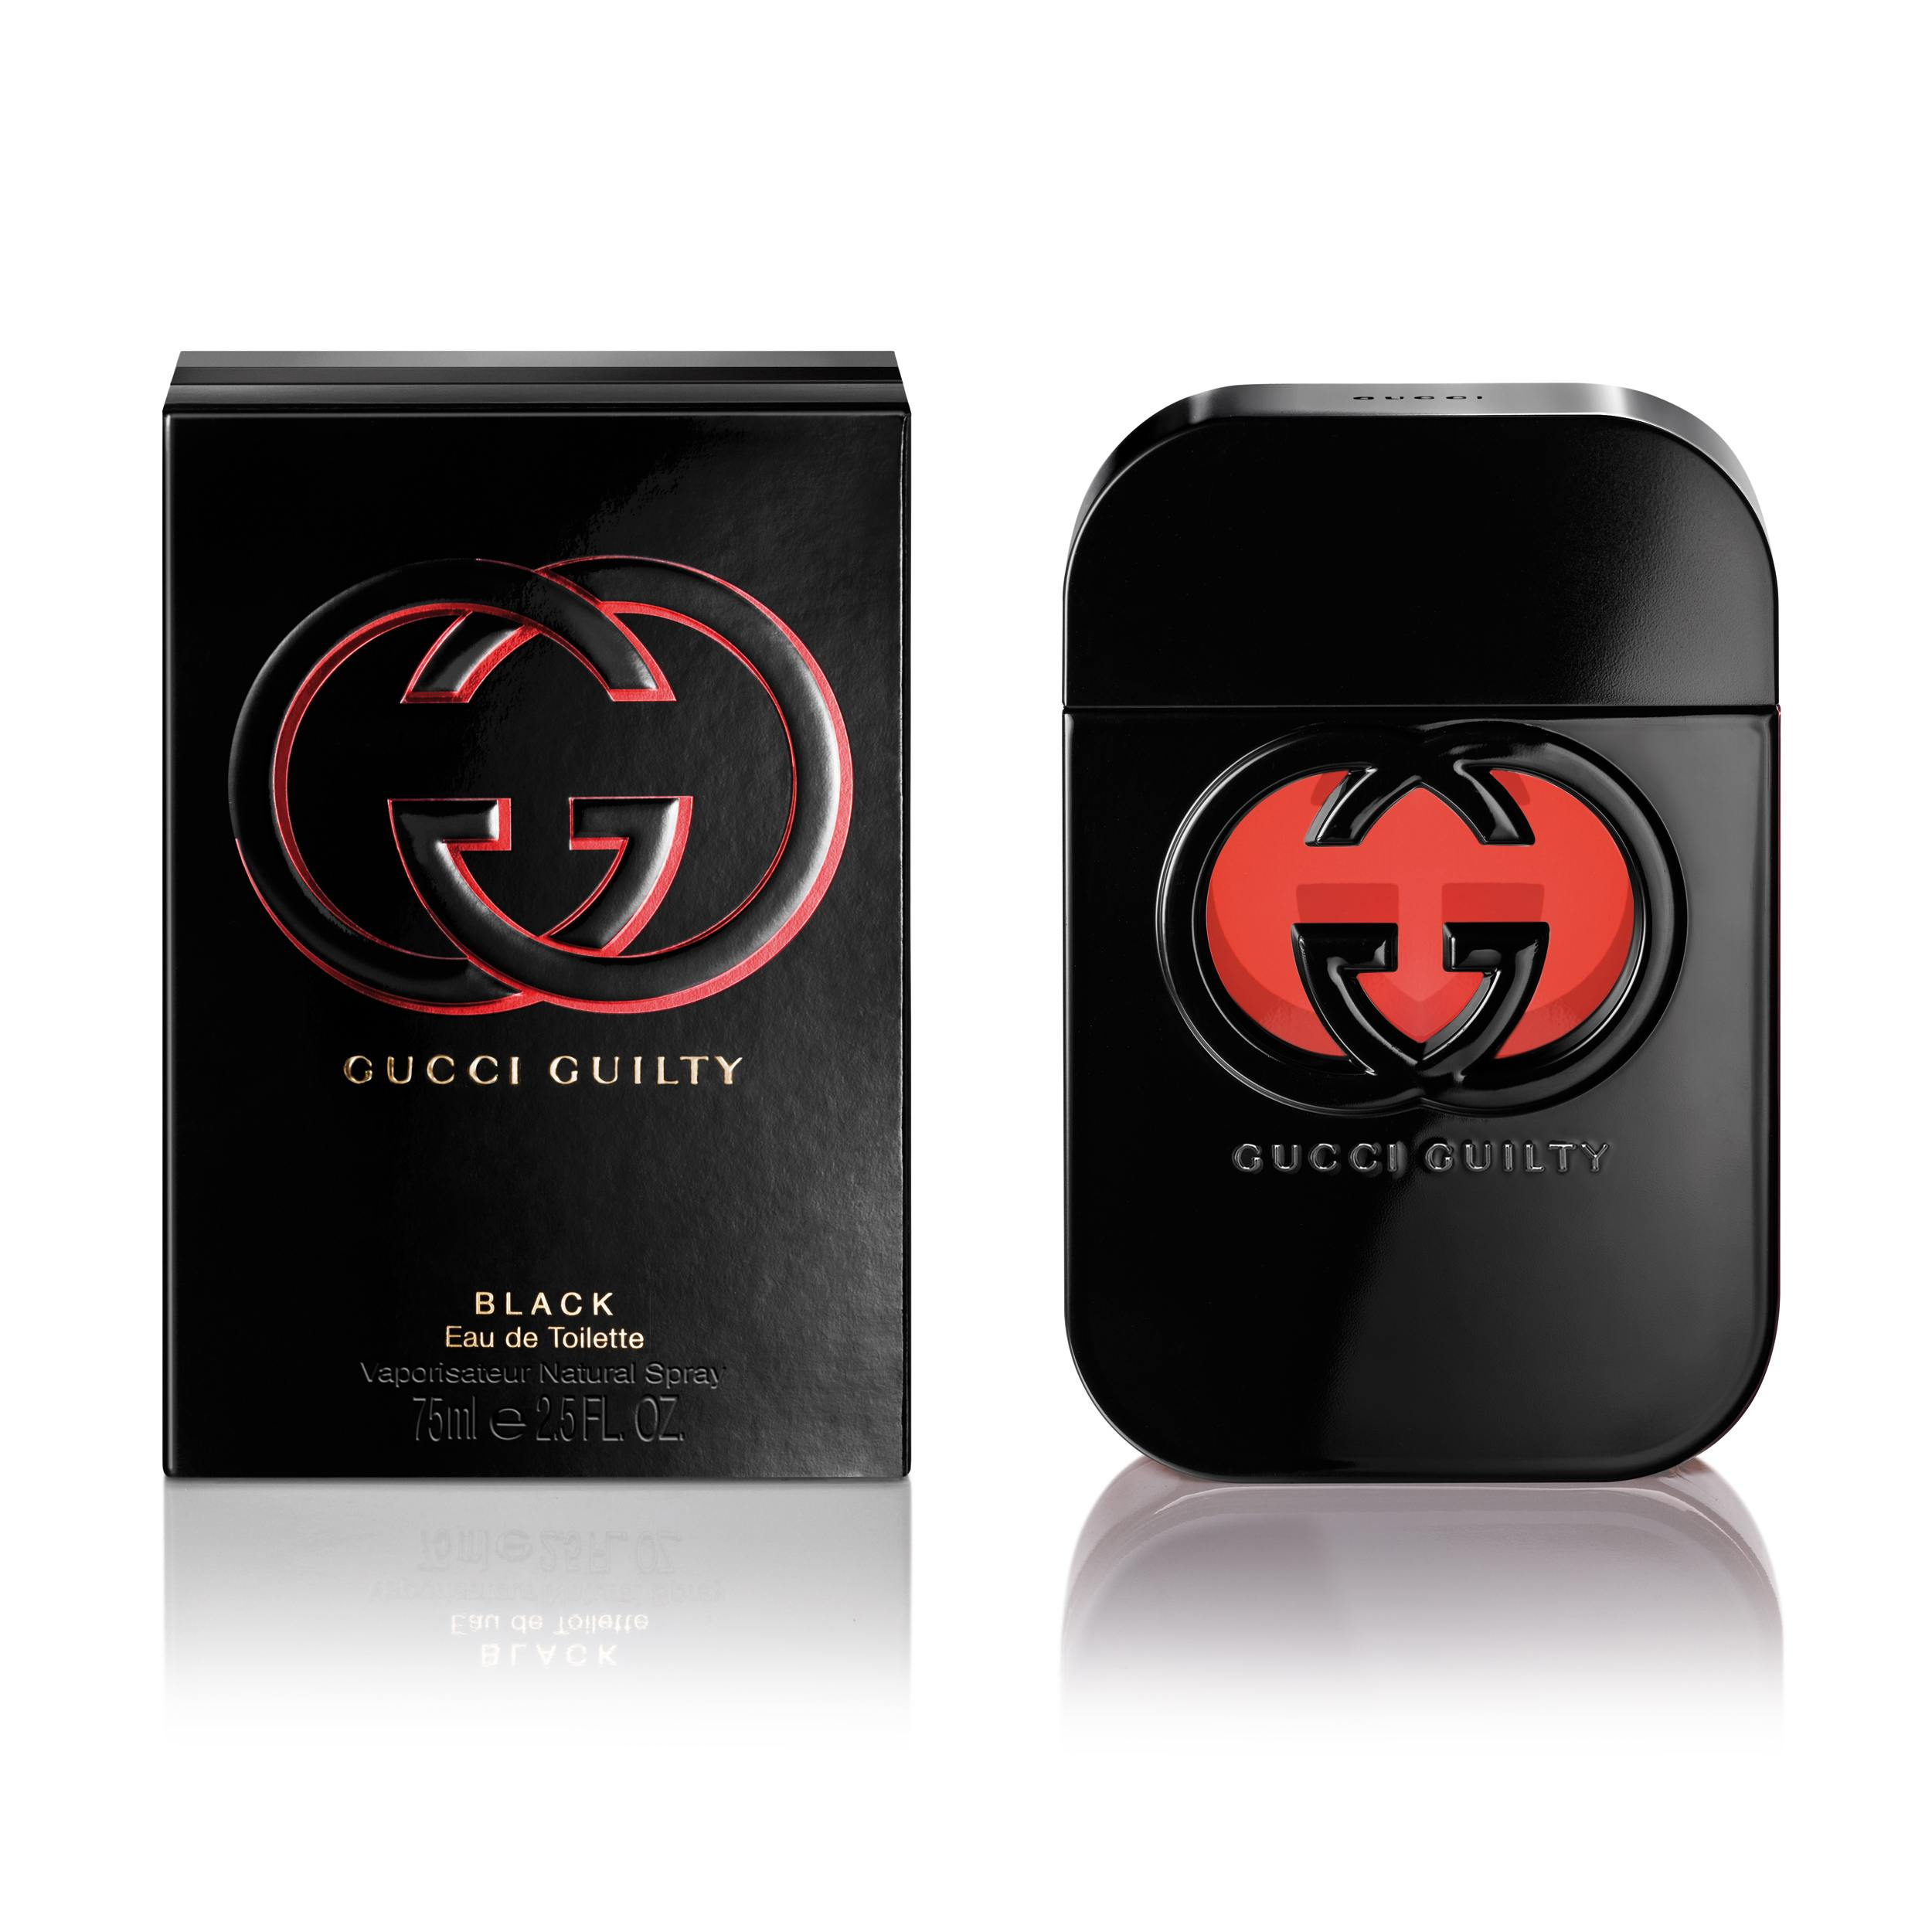 Perfume Mujer Gucci Guilty Black edt 75 ml